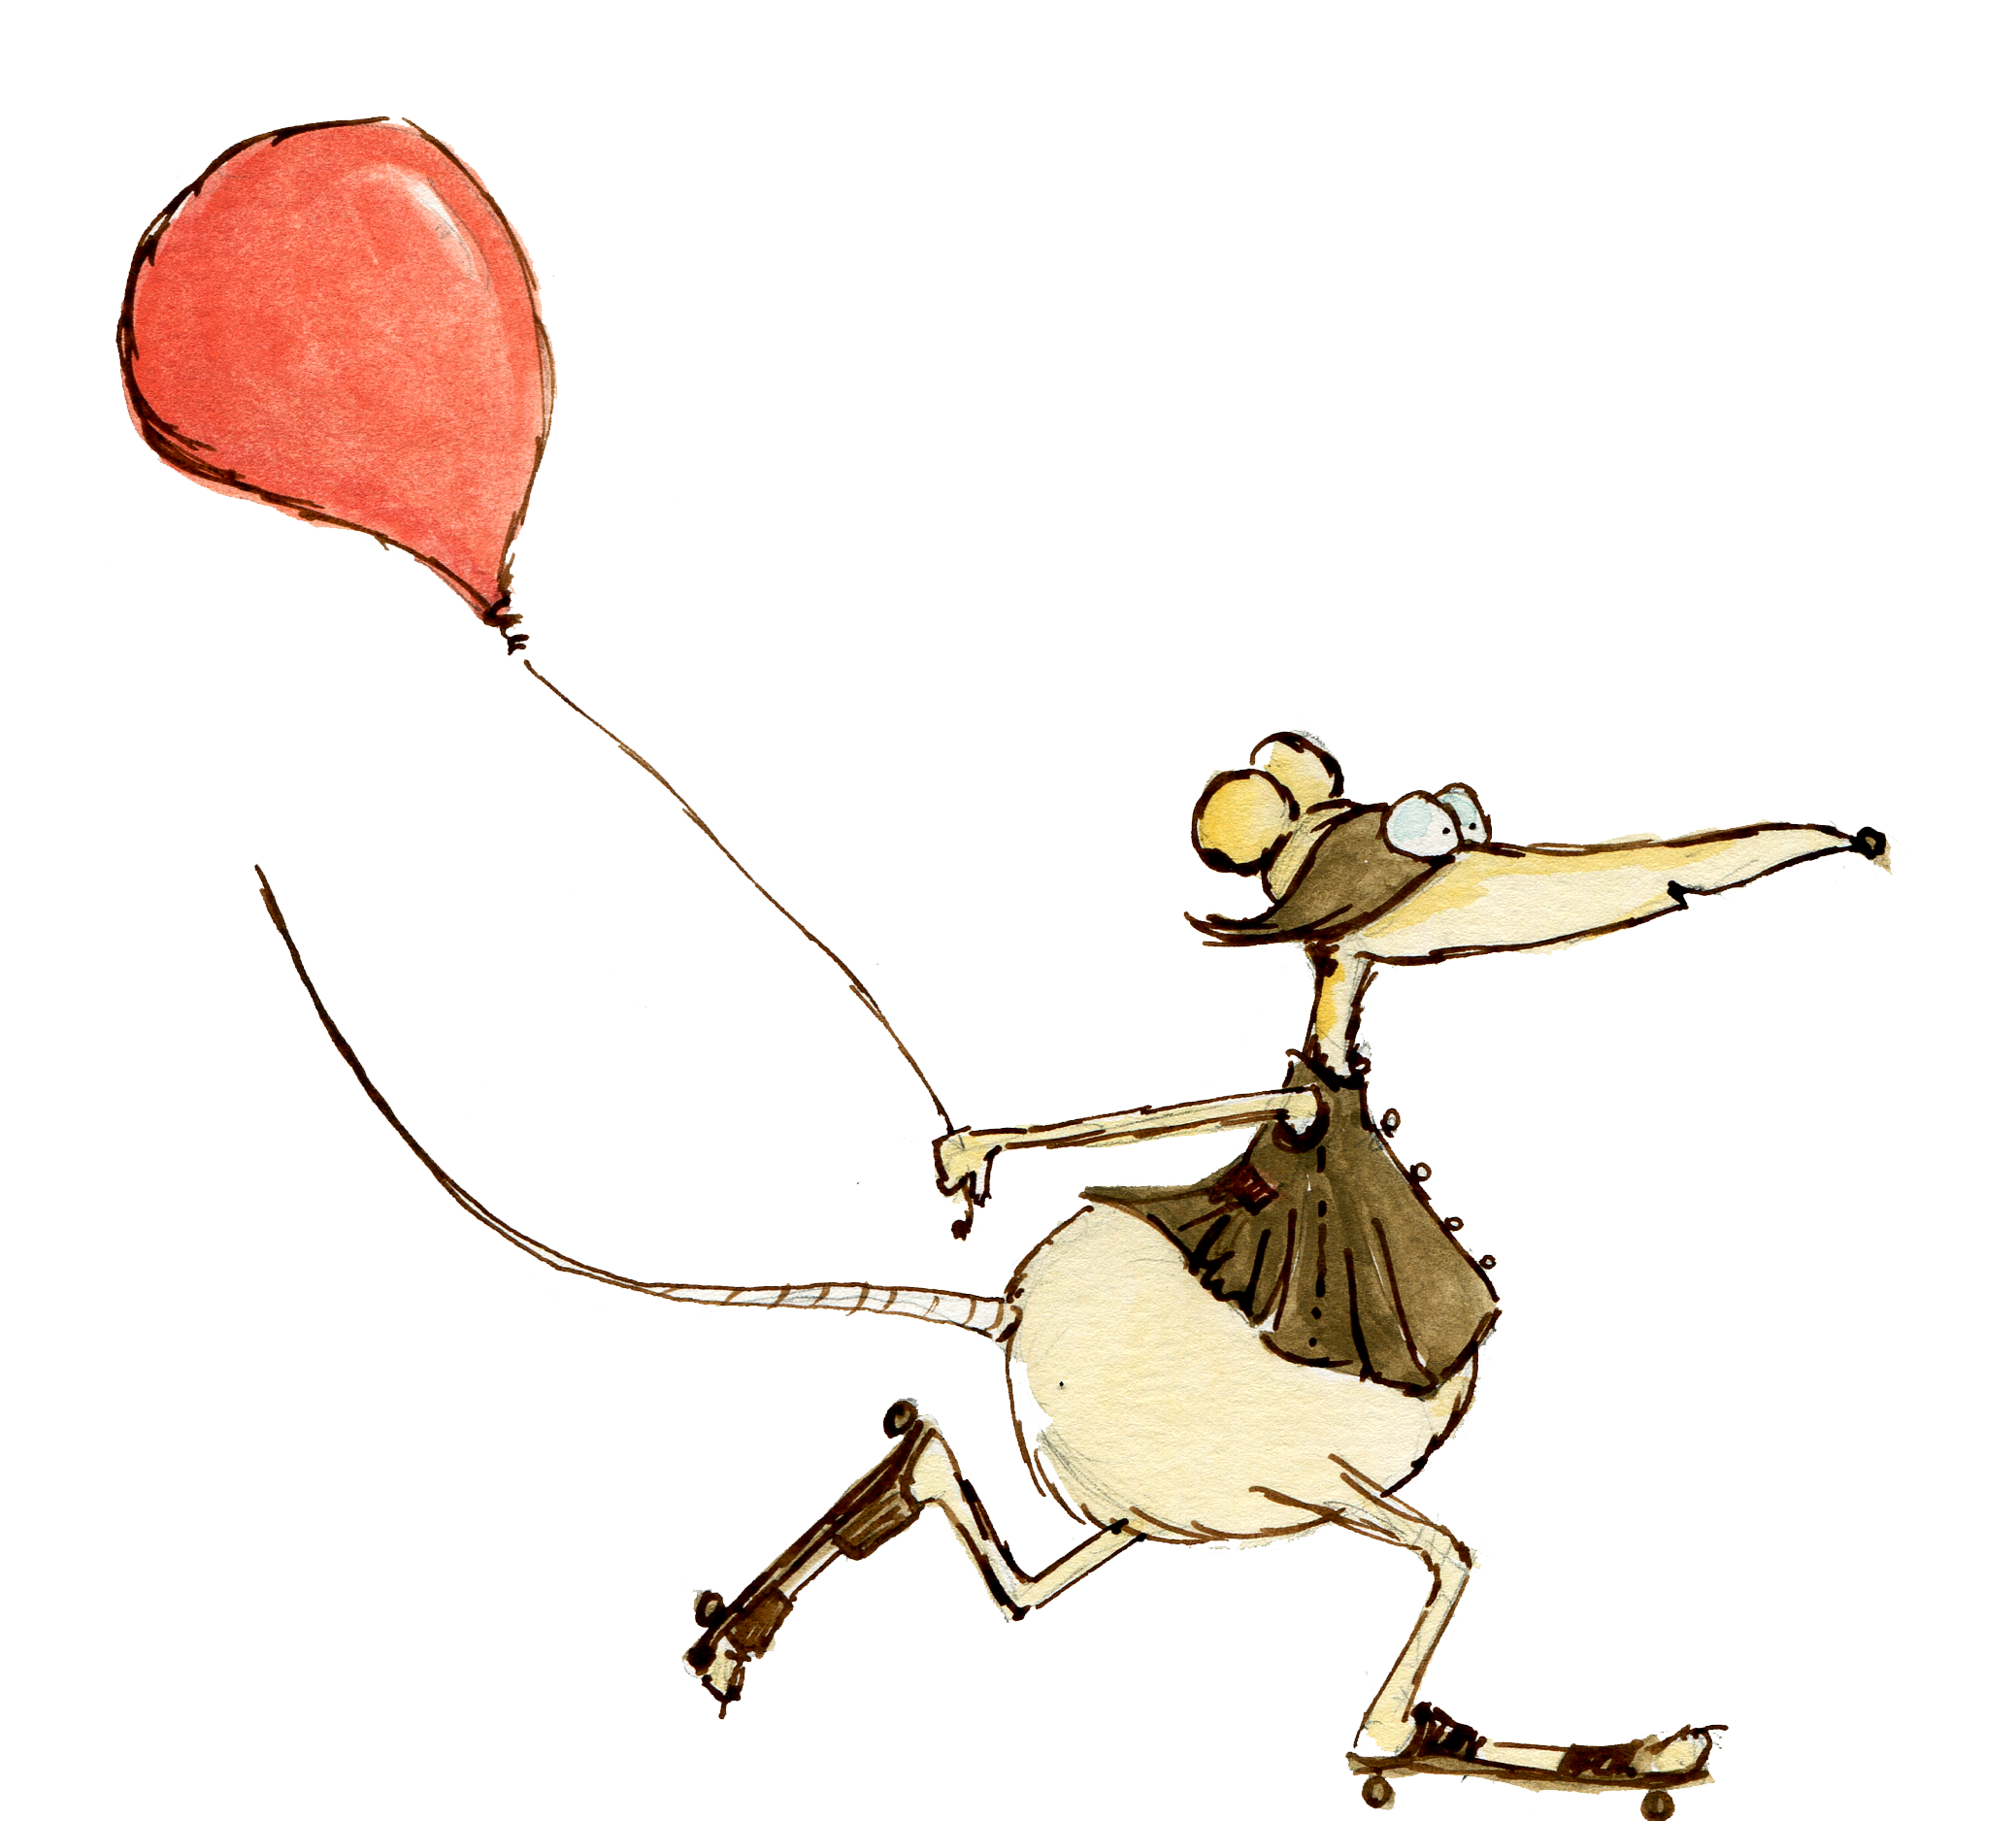 balloon-mouse.png